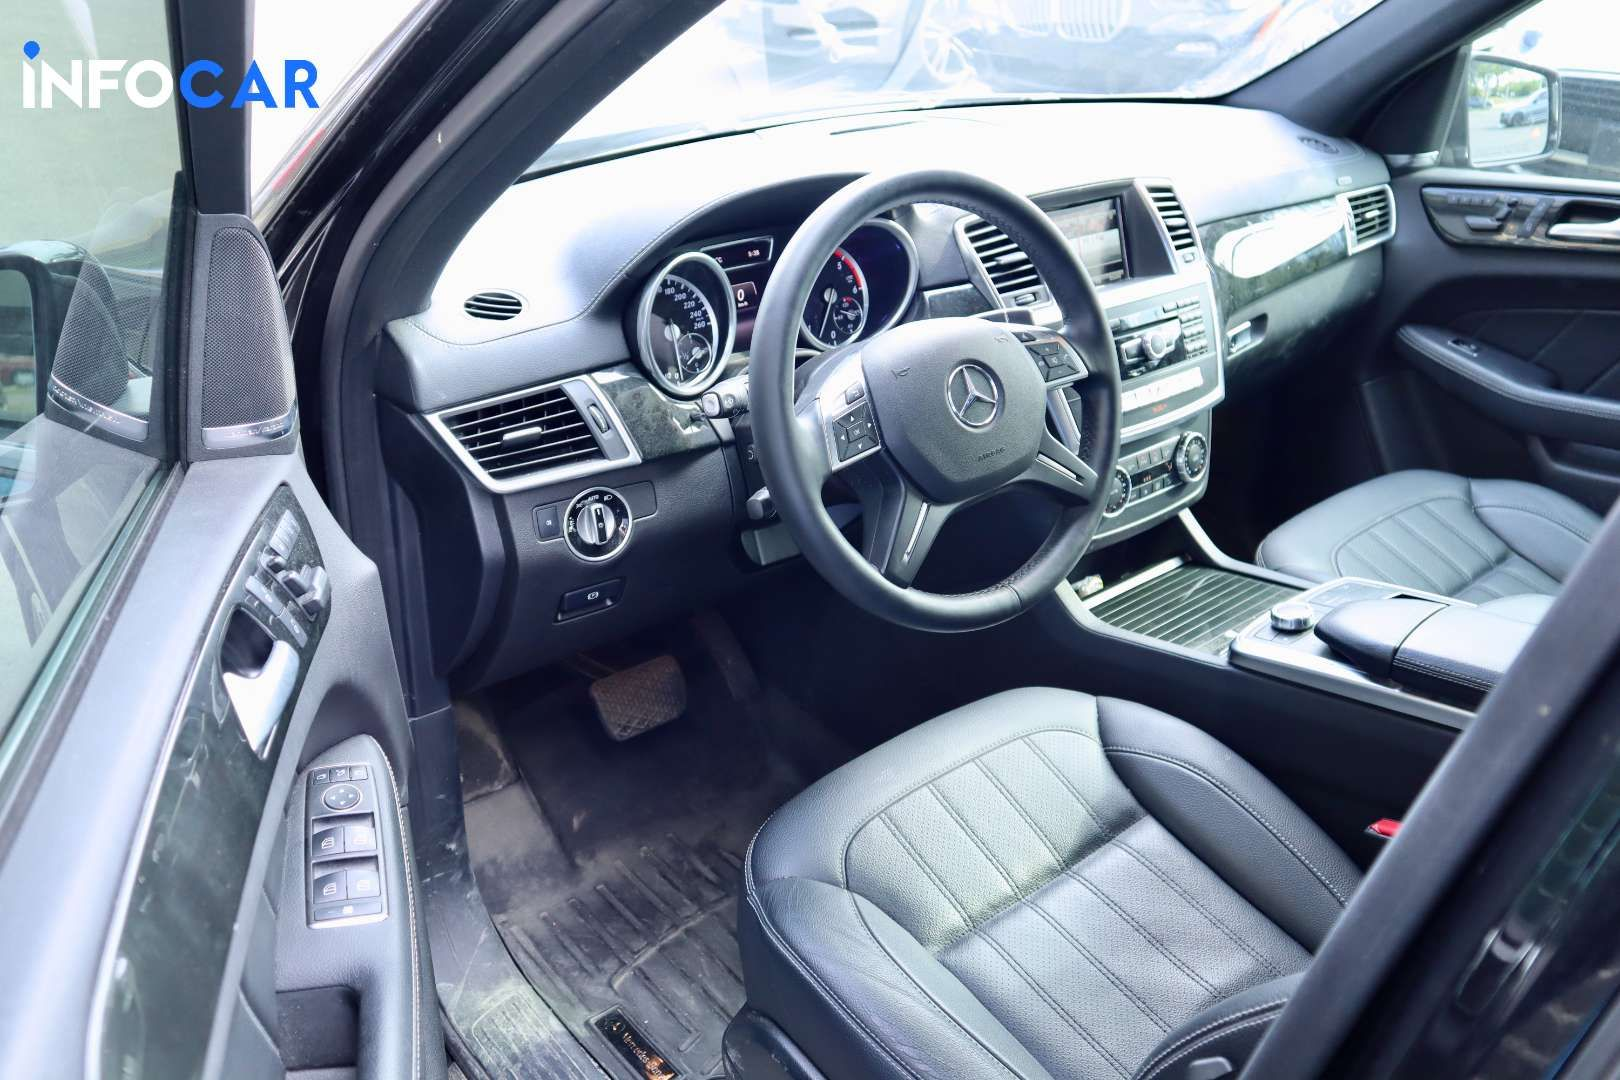 2017 Mercedes-Benz GL-Class GL350 4MATIC - INFOCAR - Toronto's Most Comprehensive New and Used Auto Trading Platform